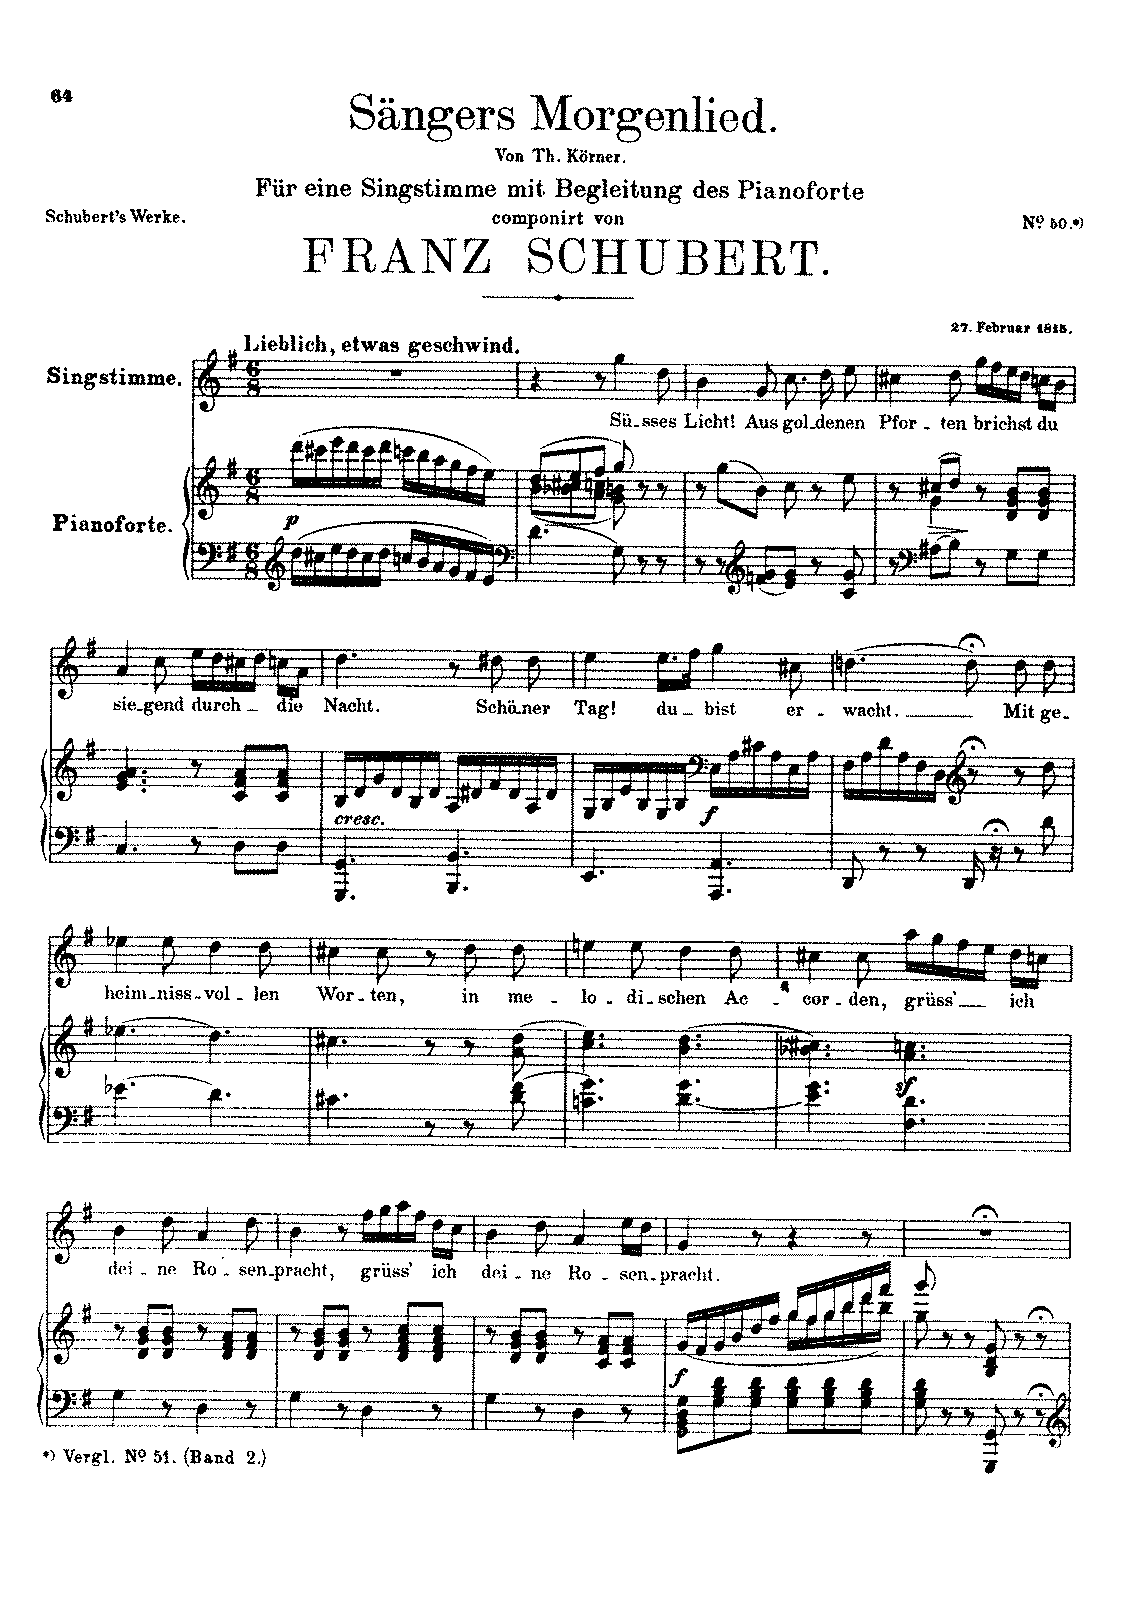 SchubertD163 Sängers Morgenlied 1st version.pdf